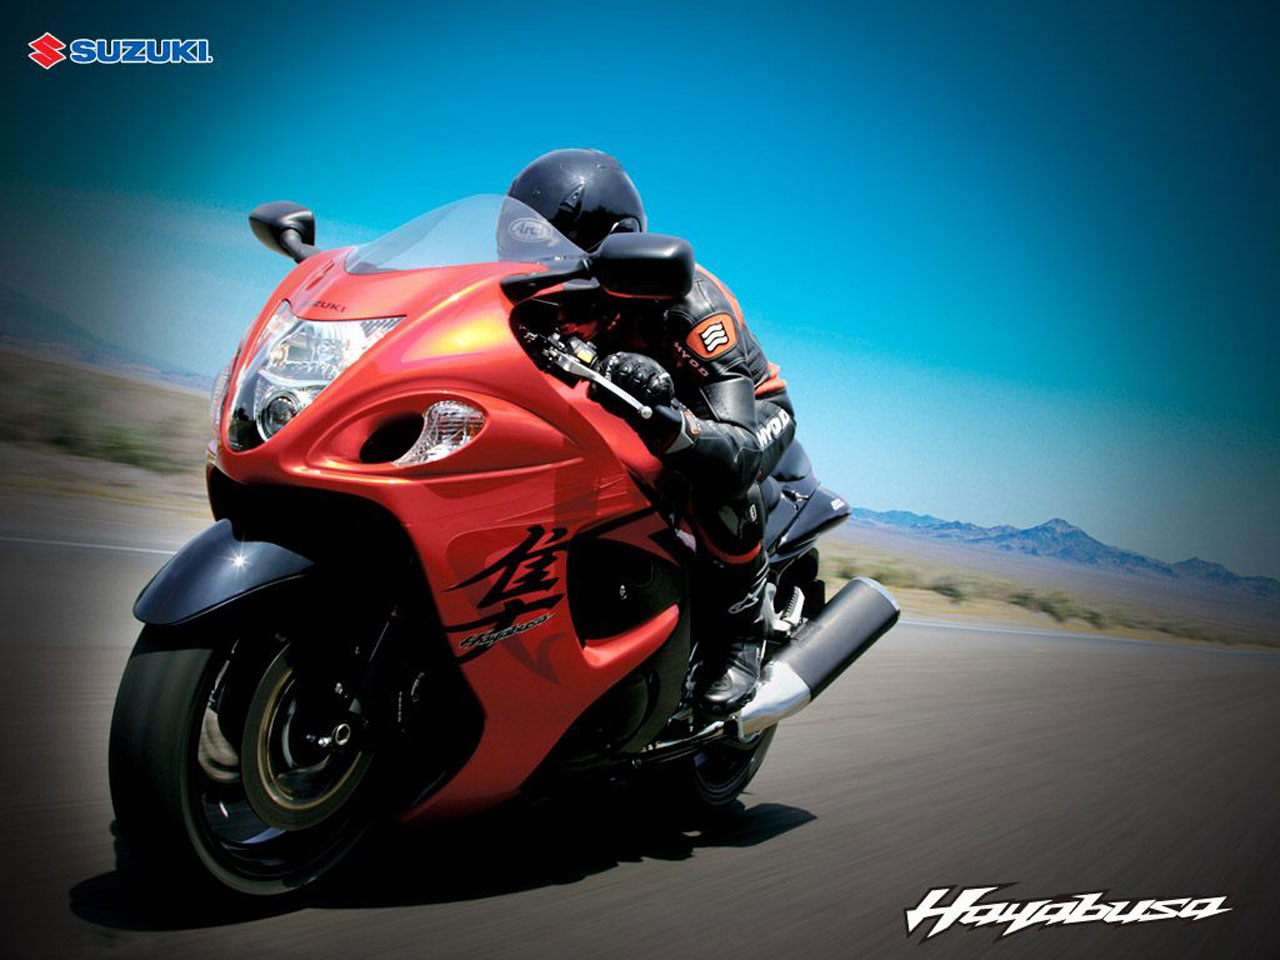 http://2.bp.blogspot.com/-g_DxFJtyw7Q/TYmIAHFuZxI/AAAAAAAAAFY/jT--JRXidvo/s1600/suzuki-red-colour-heavy-bike-wallpaper.jpg